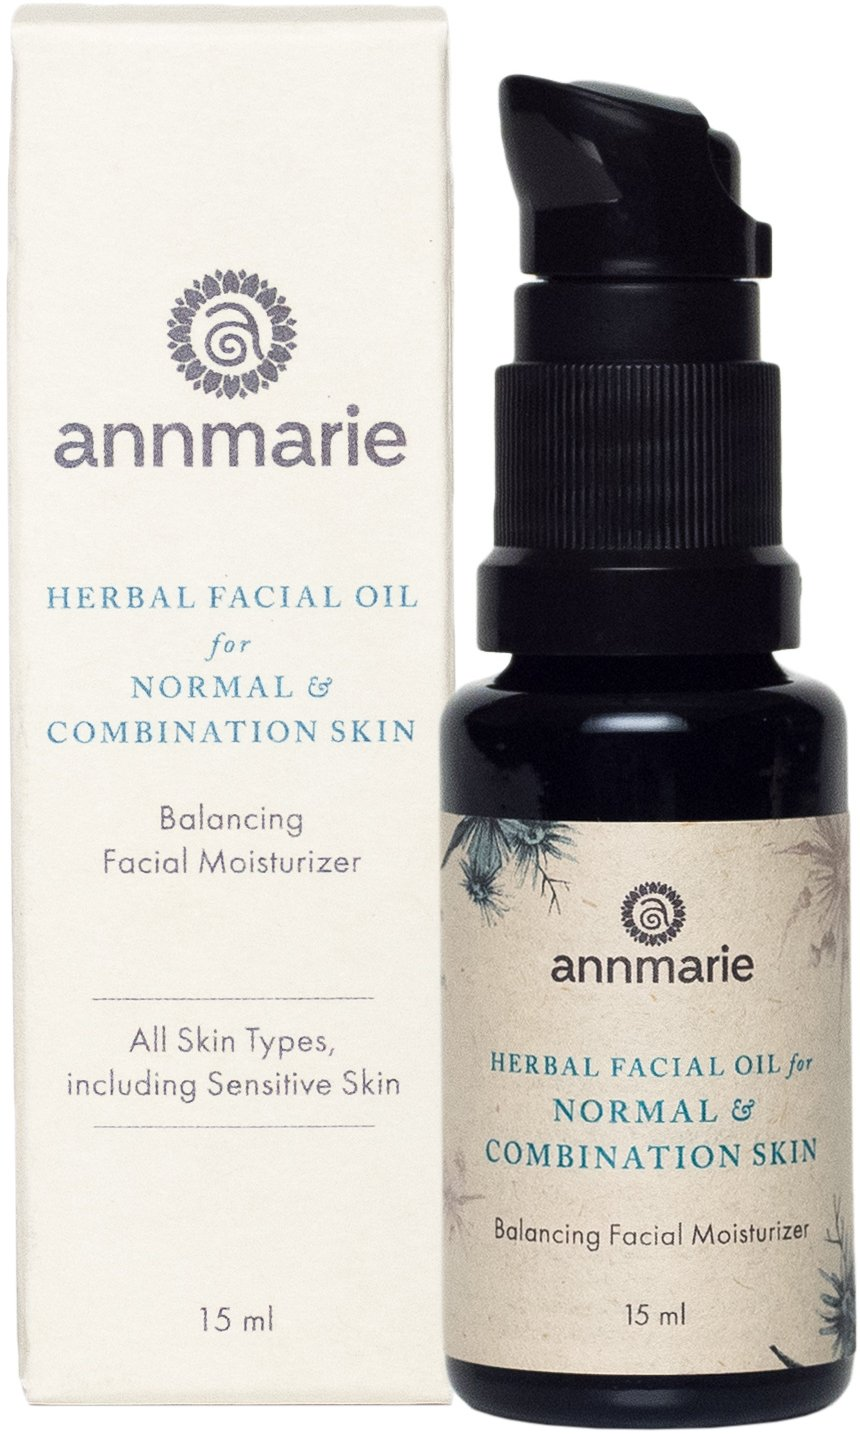 Annmarie Skin Care Herbal Facial Oil for Normal and Combination Skin - Balancing Moisturizer with Blue Chamomile, Tamanu Oil + Grapeseed Oil (15 Milliliters, 0.5 Fluid Ounces)